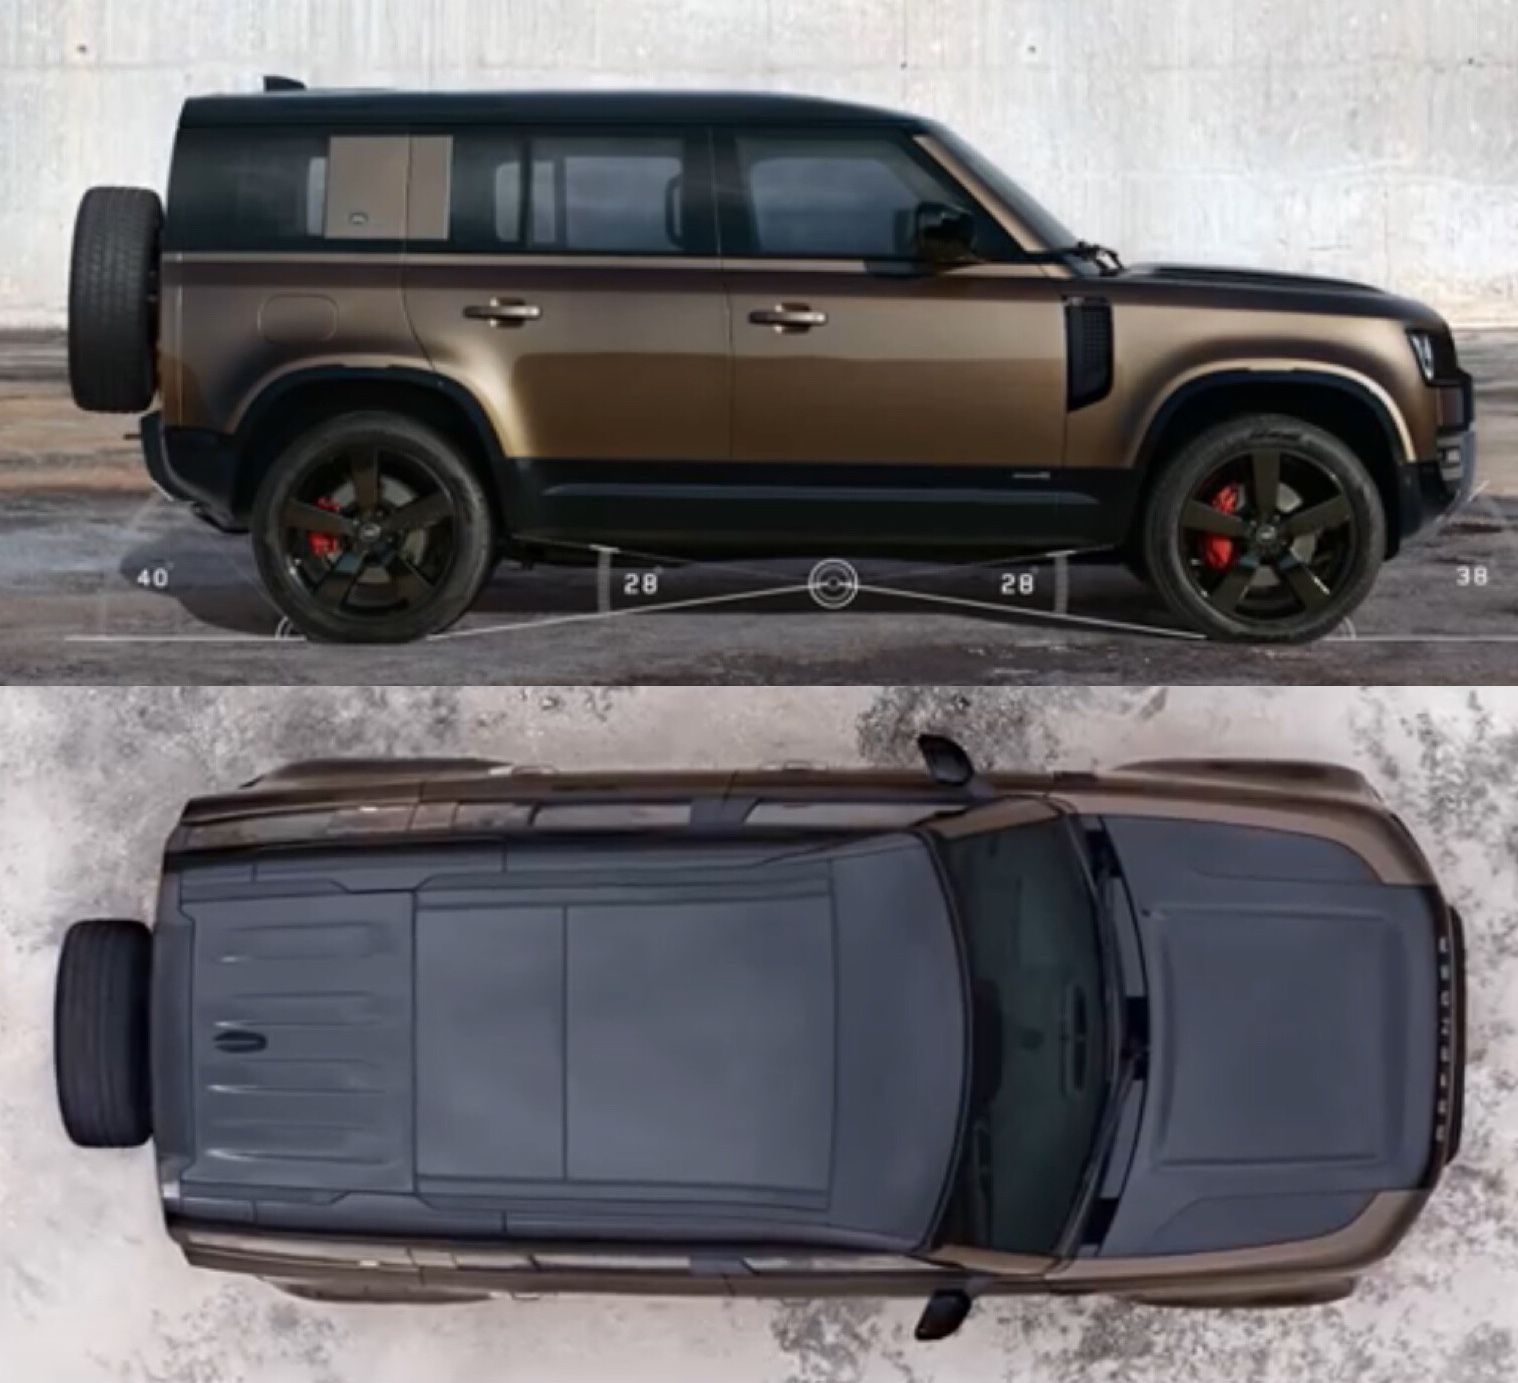 Pin By Ben Lotte On L R New Defender 2020 Land Rover Defender Land Rover Jaguar Land Rover